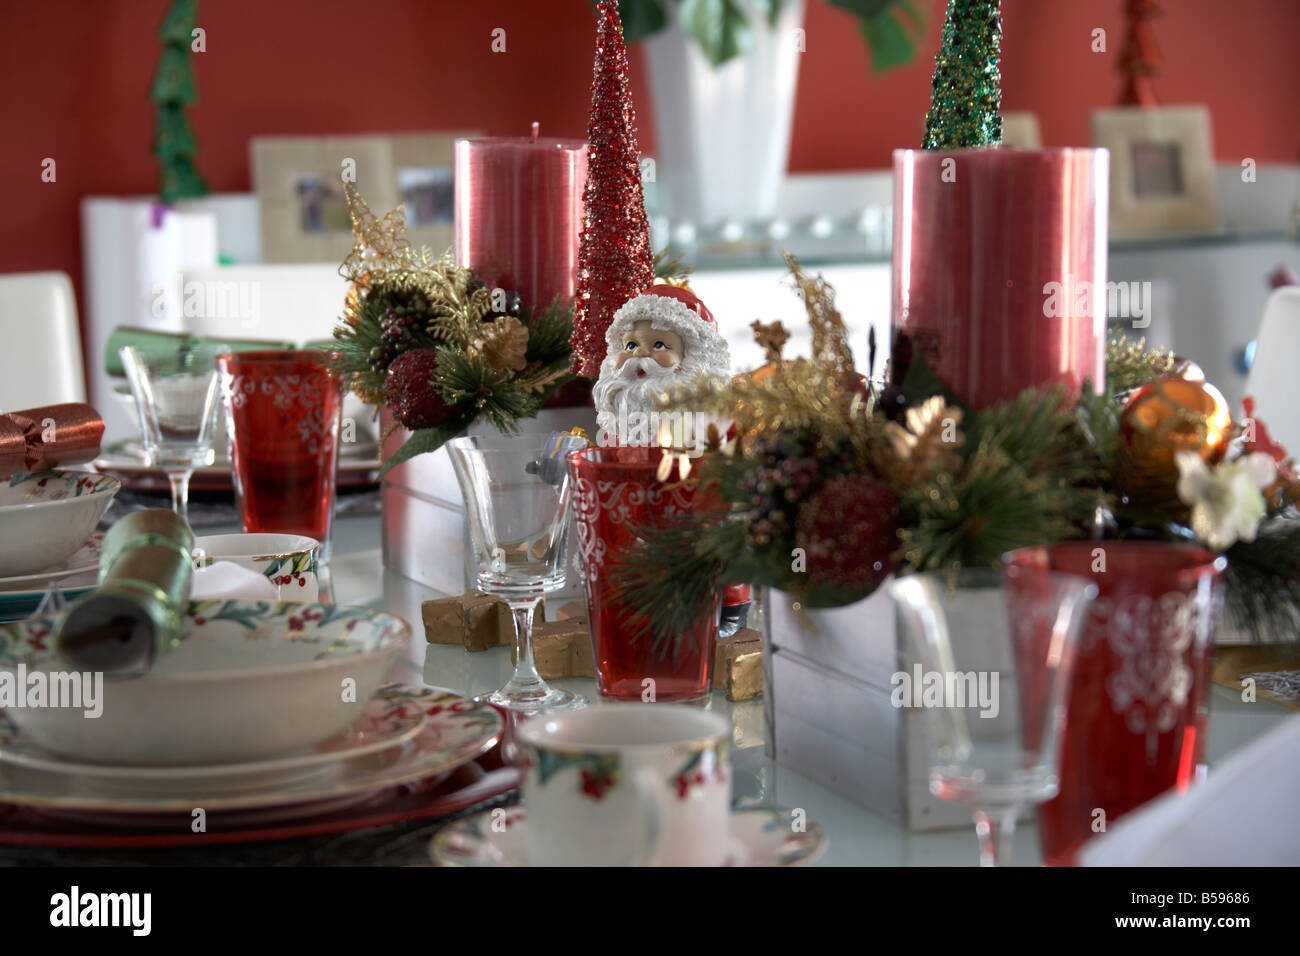 Table Laid With Christmas Decorations Tableware And Ornaments In